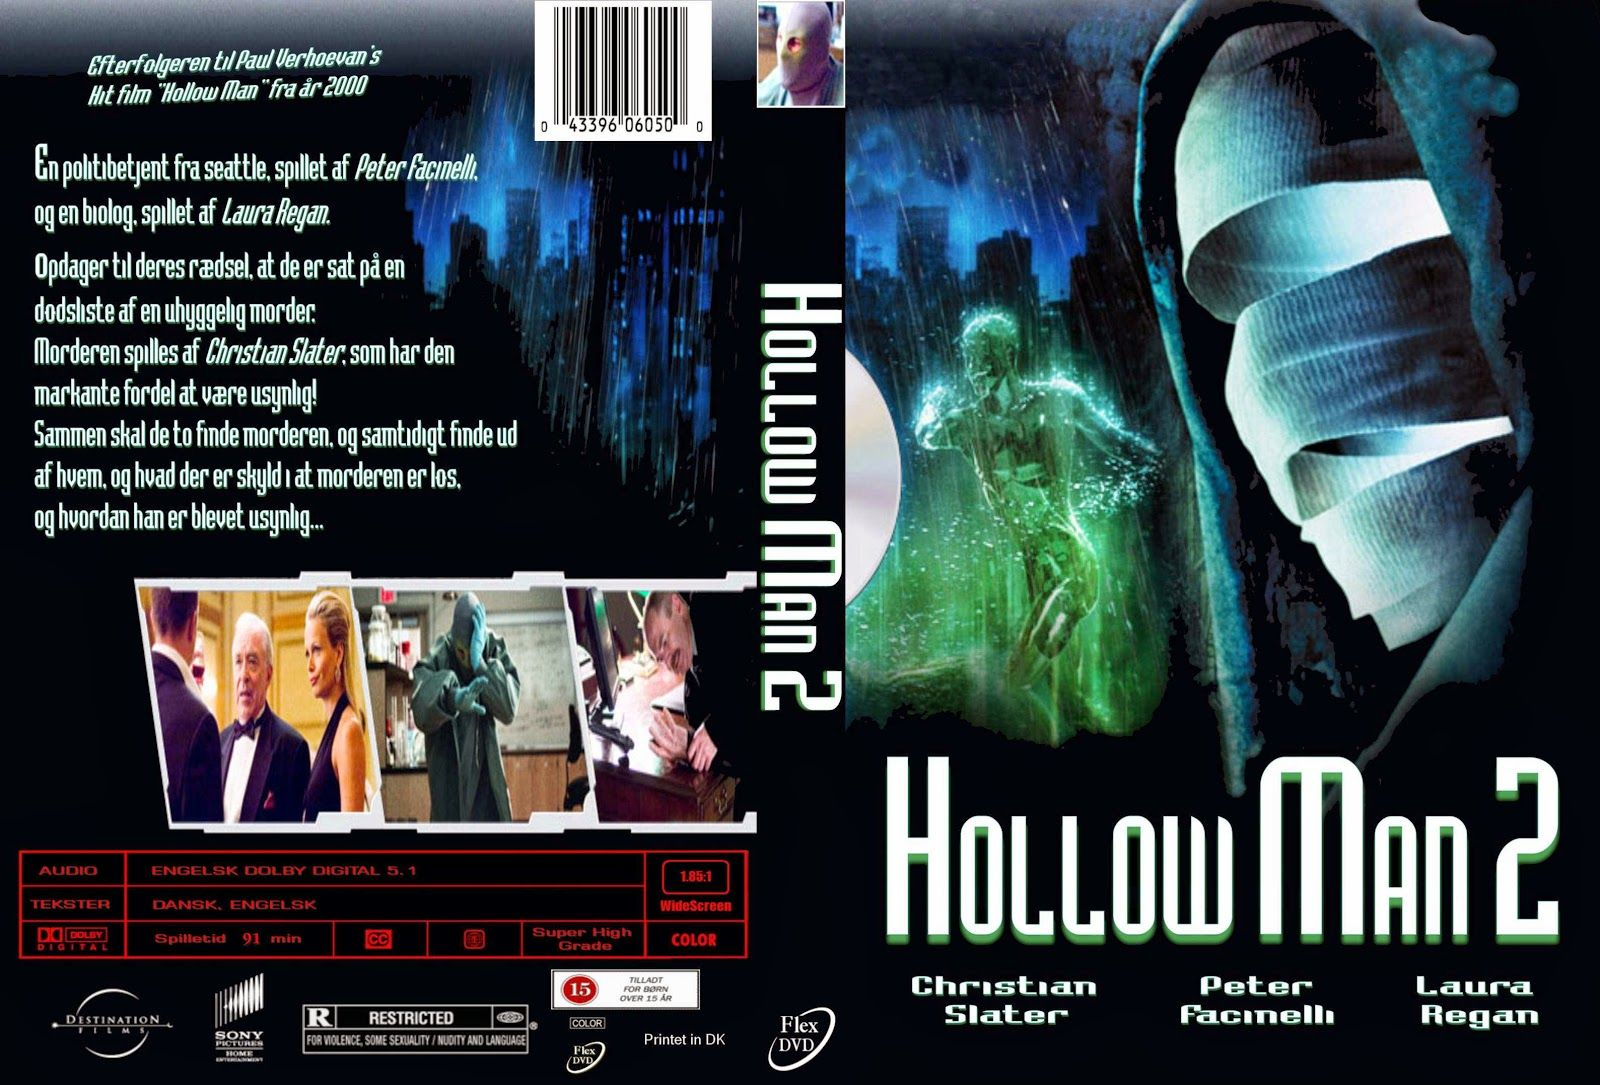 Hollow Man 2 DVD Hindi Dubbed Hollywood Movie Film Cinema Free Download in AVI and 3GP